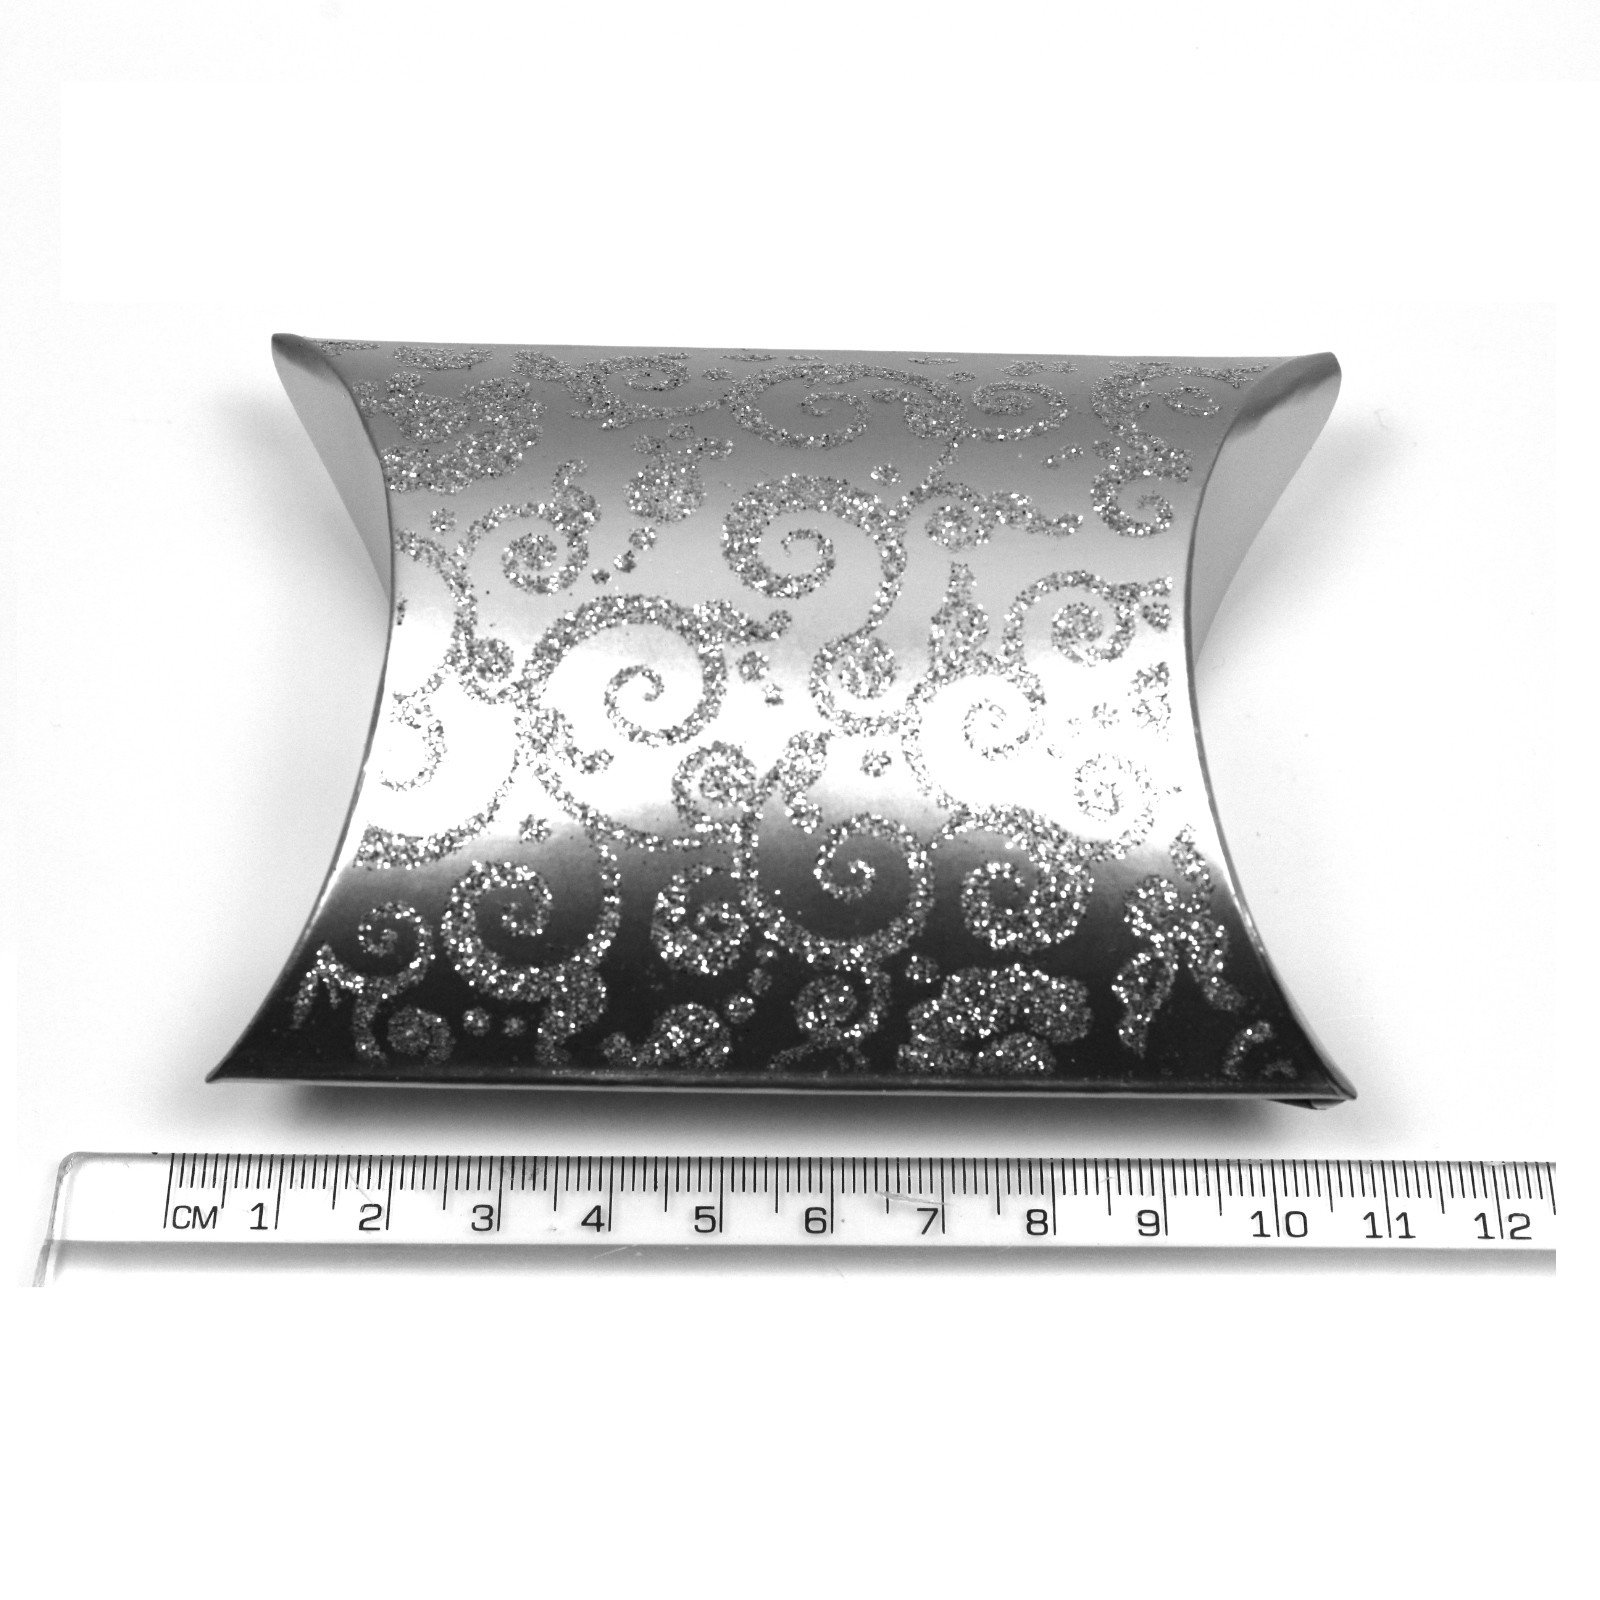 Silver glitter gift box ideal for jewellery and wedding favours ruler